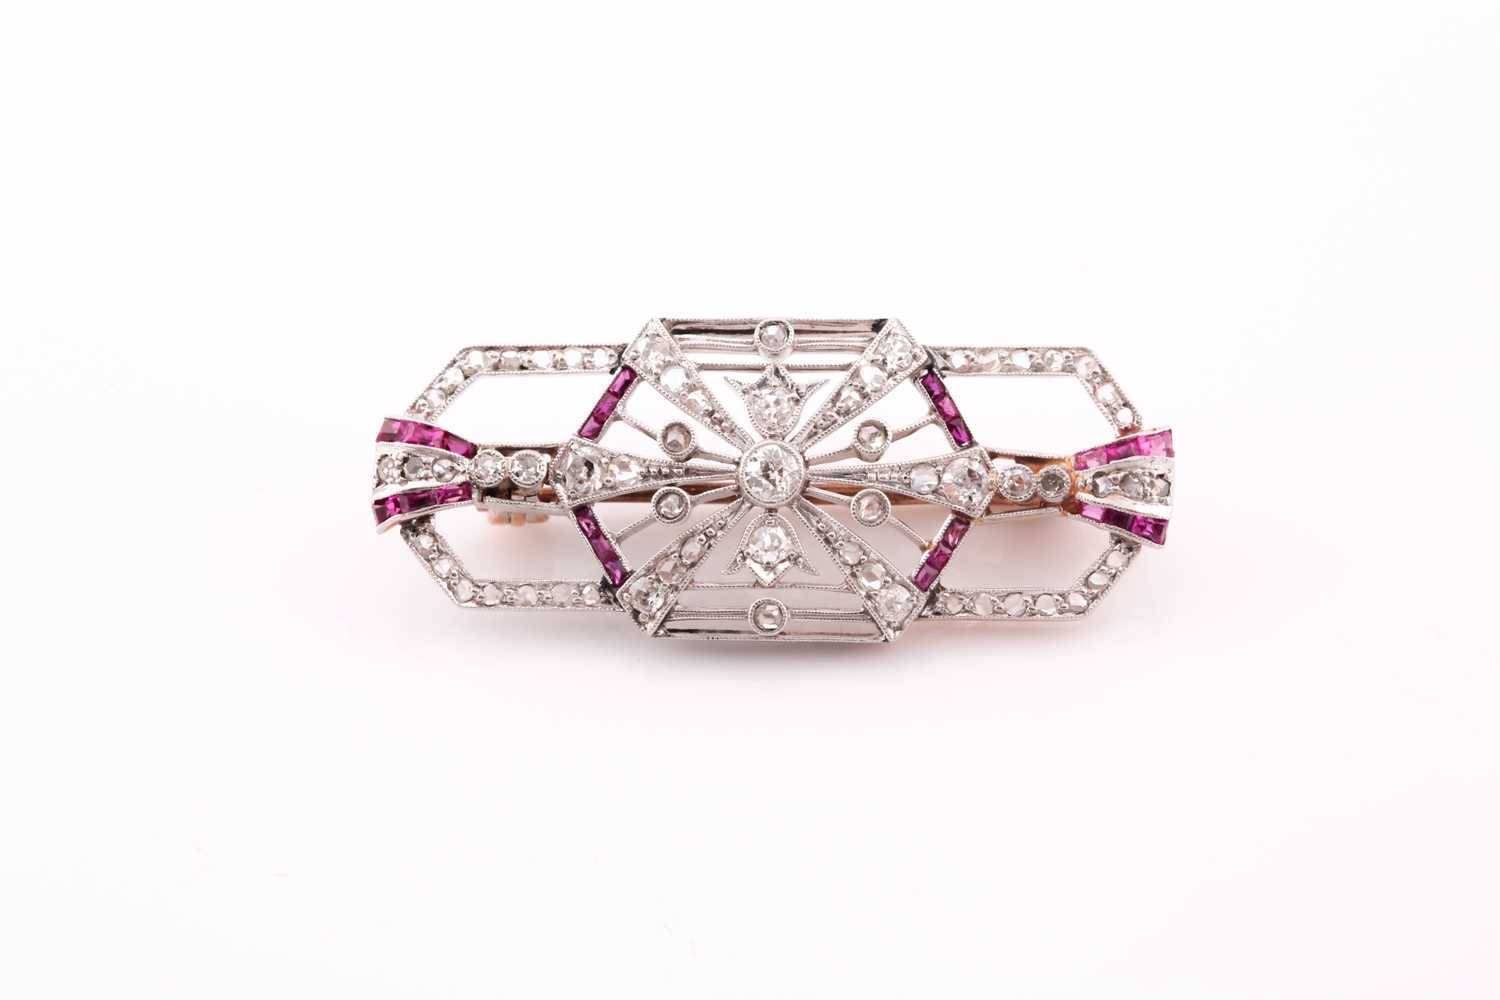 A diamond and ruby plaque brooch, in the Art Deco style, set with round single-cut and rose-cut